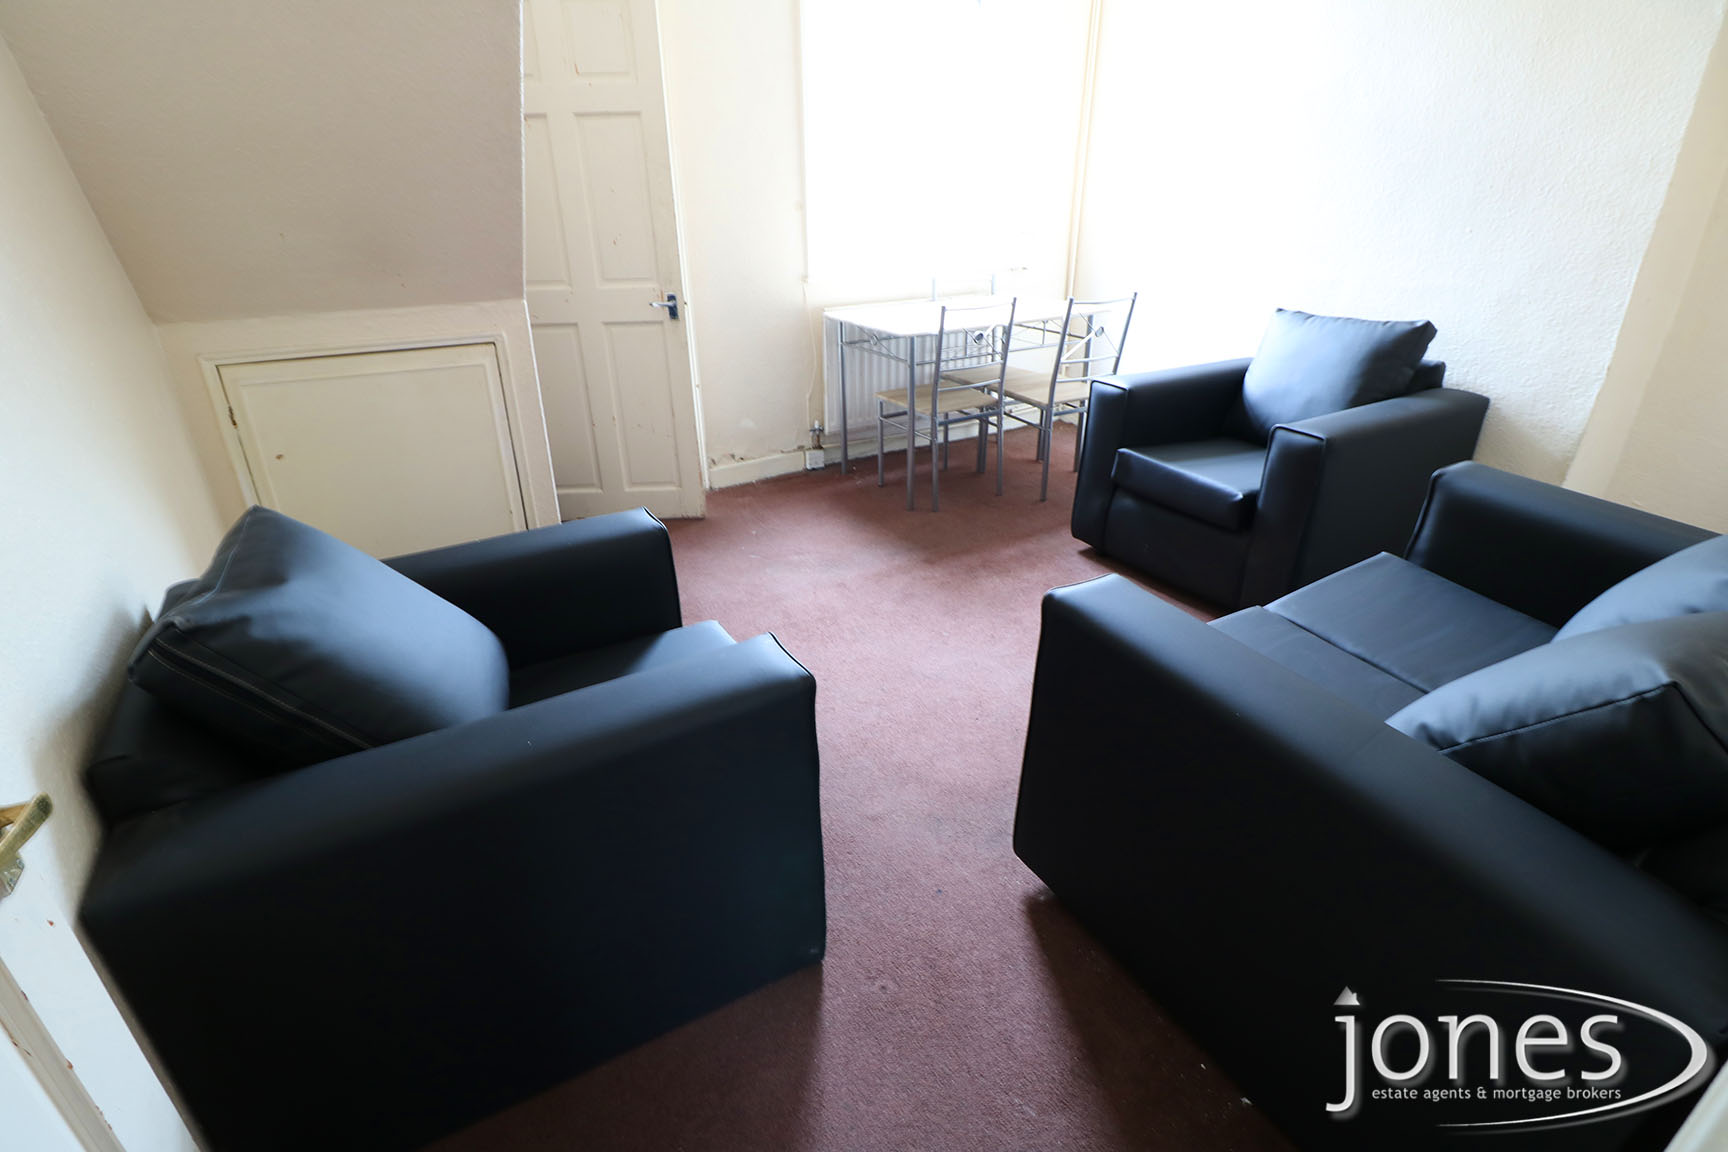 Home for Sale Let - Photo 02 Percy Street,  Middlesbrough, TS1 4DD